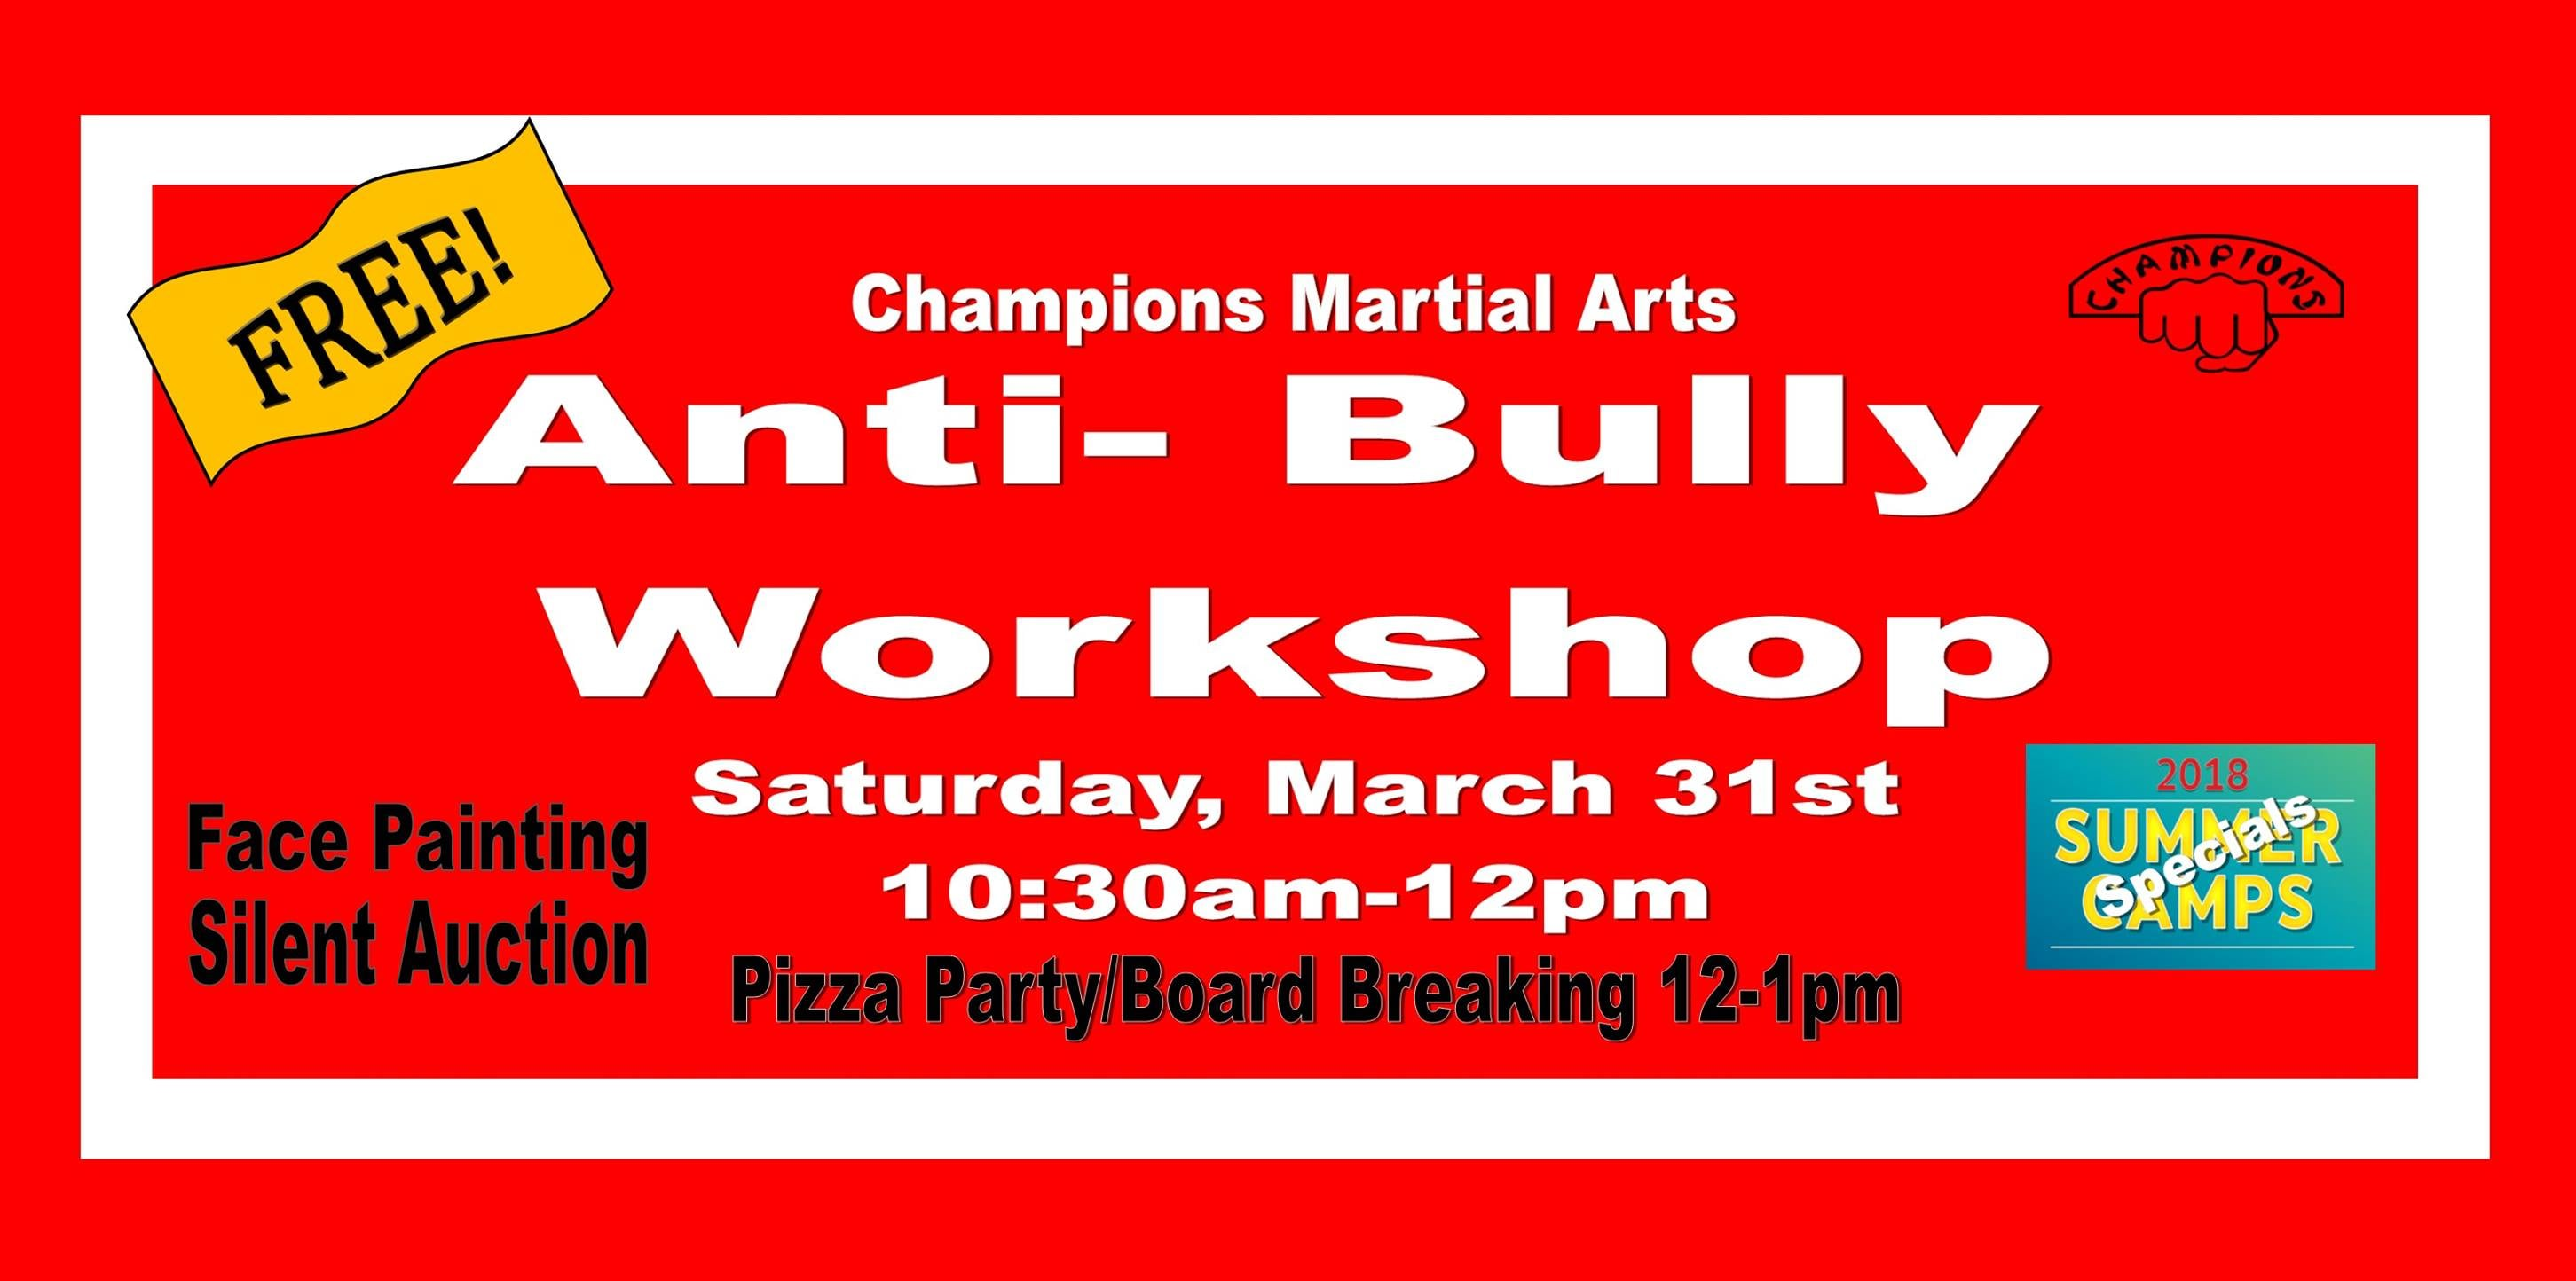 Anti-Bully Workshop in Sewell - Champions Martial Arts